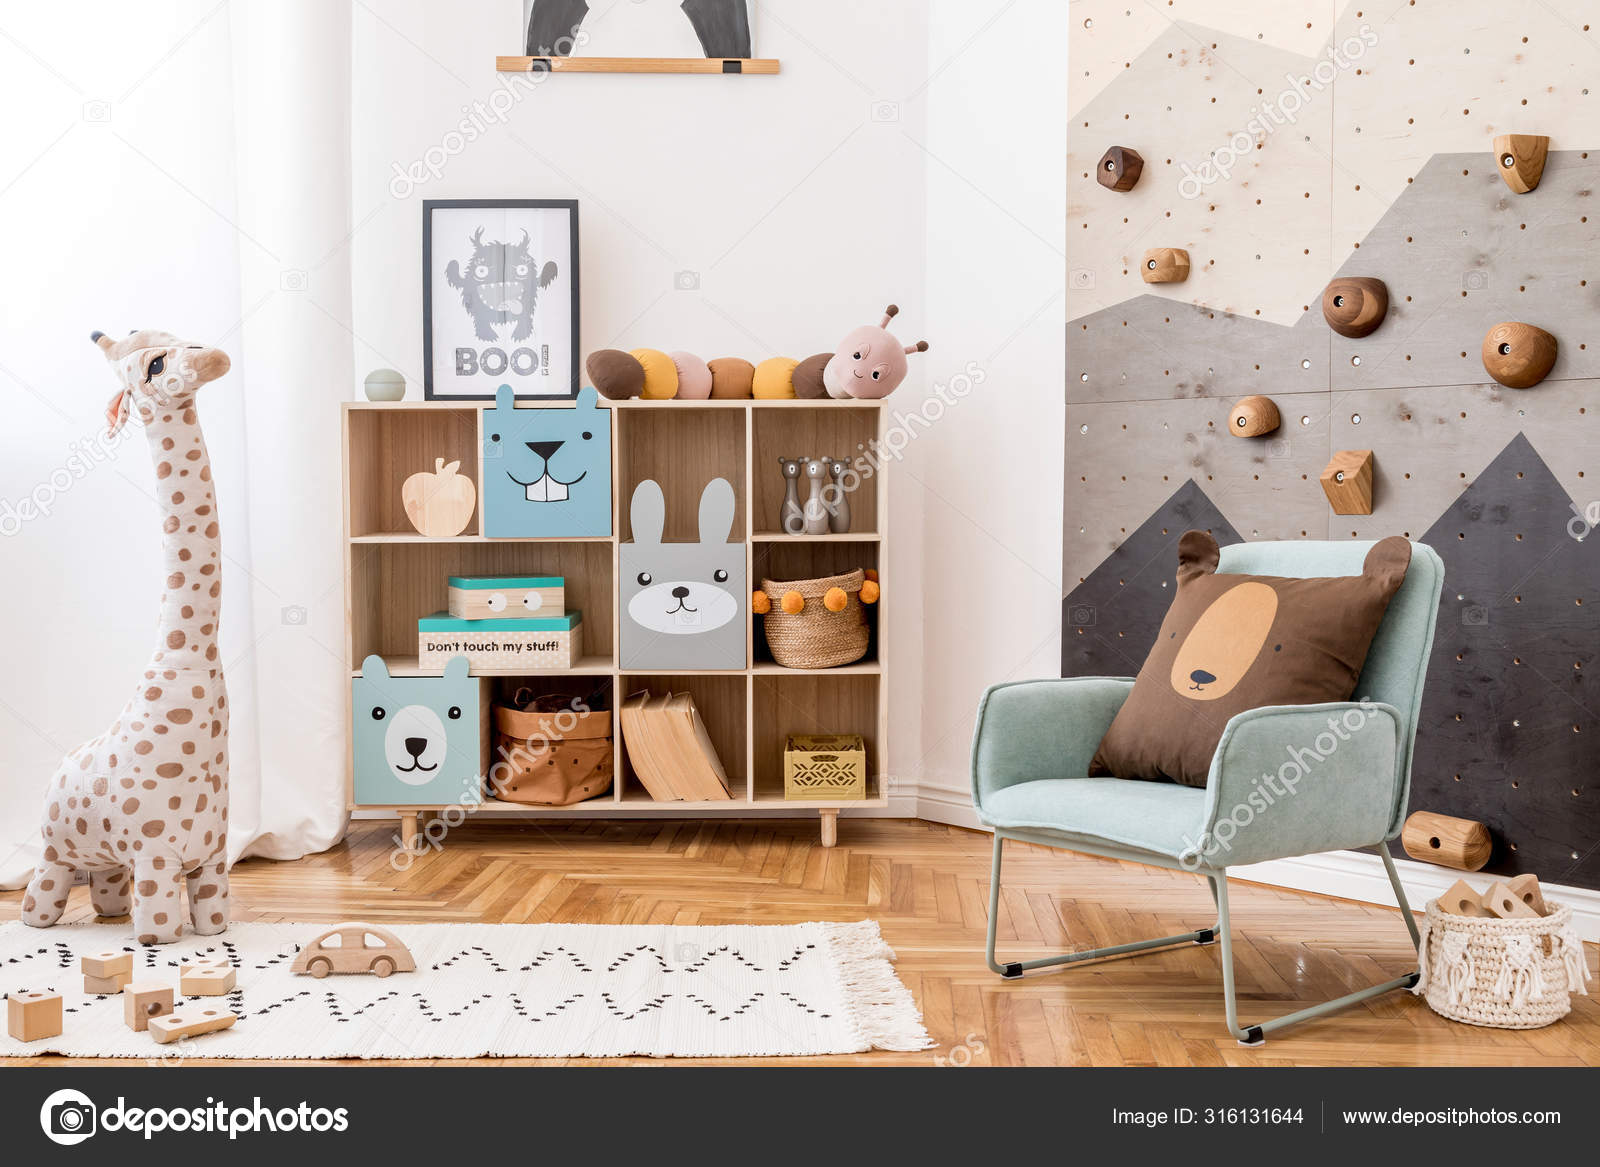 Scandinavian Interior Design Playroom Modern Climbing Wall Kids Design Furnitures Stock Photo Image By Followtheflow 316131644